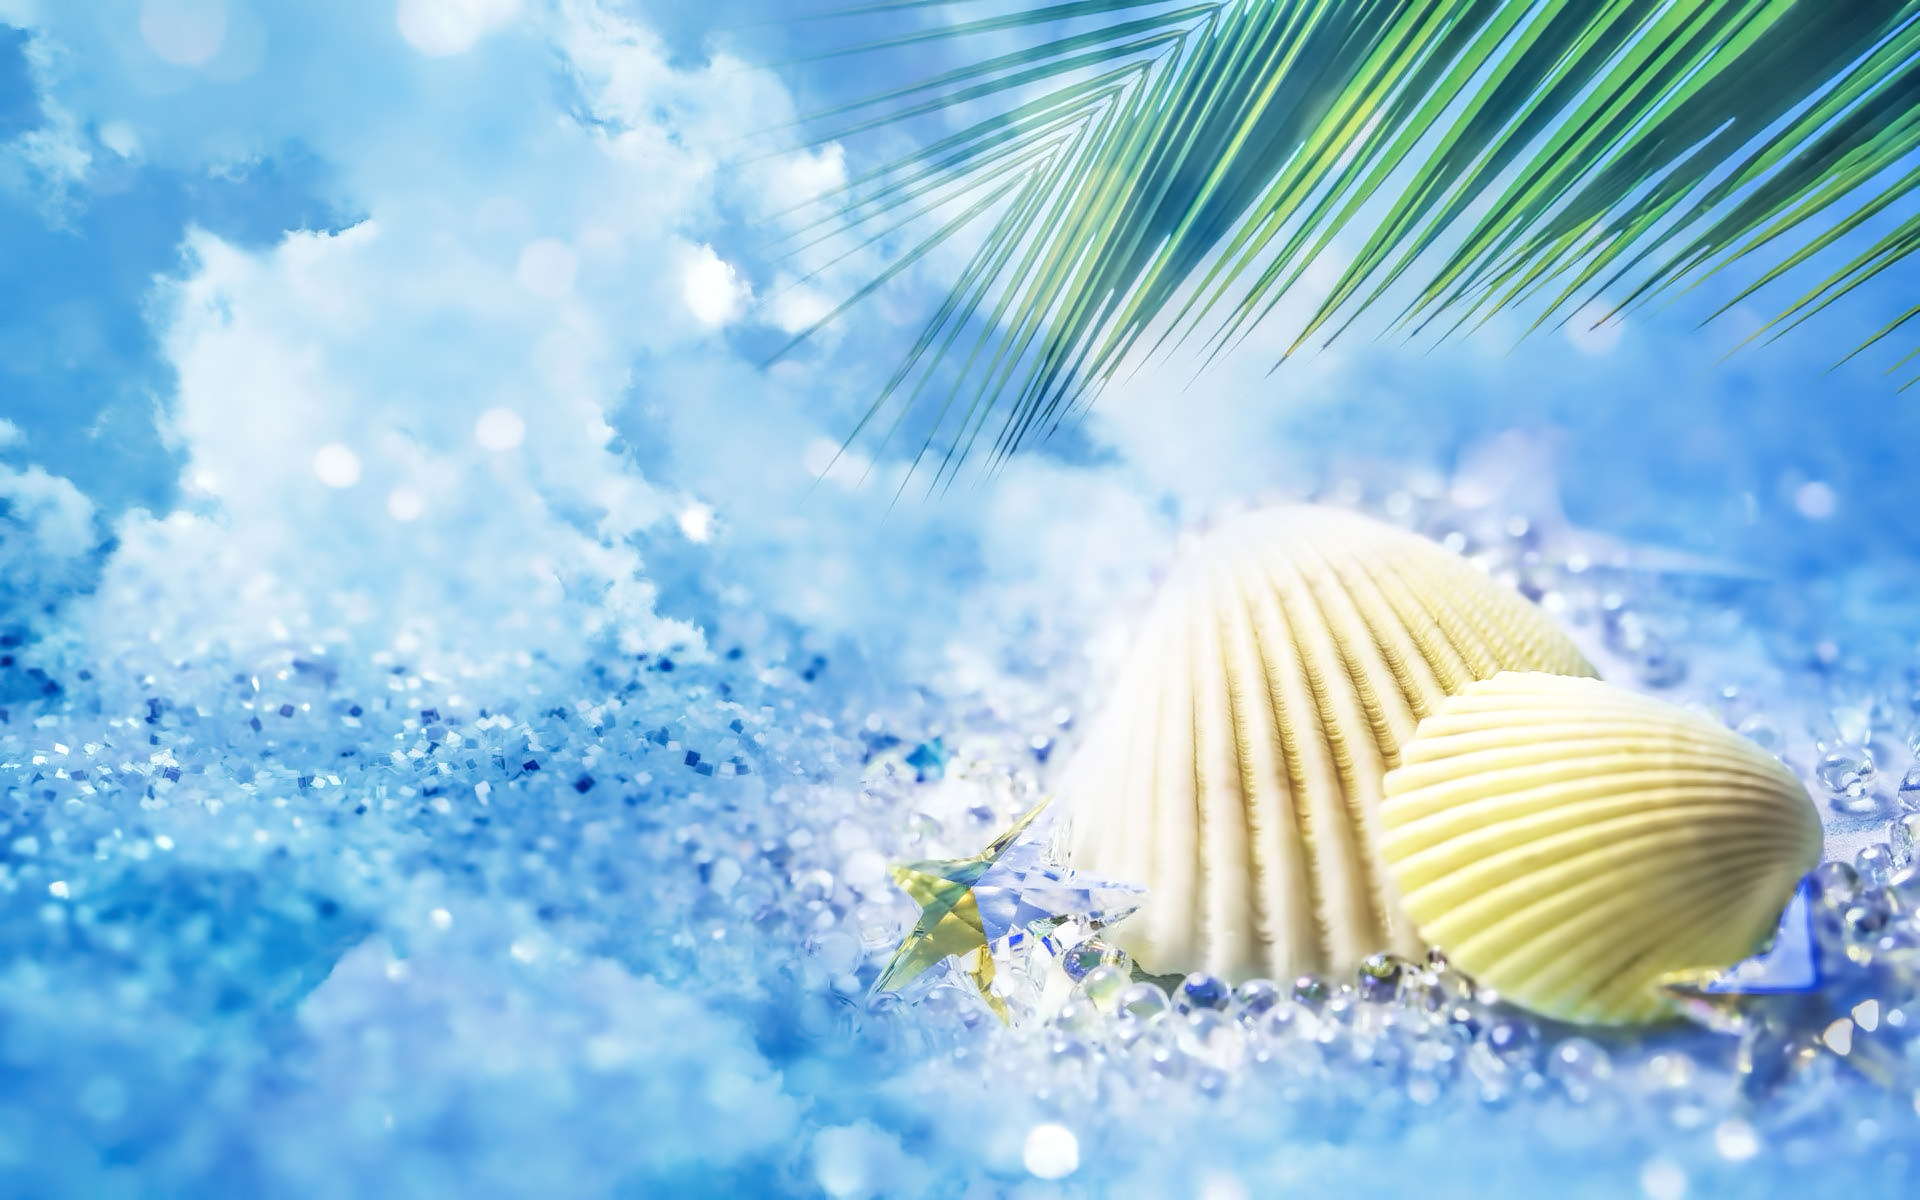 Beach Dream Sea Shells widescreen wallpaper Wide WallpapersNET 1920x1200